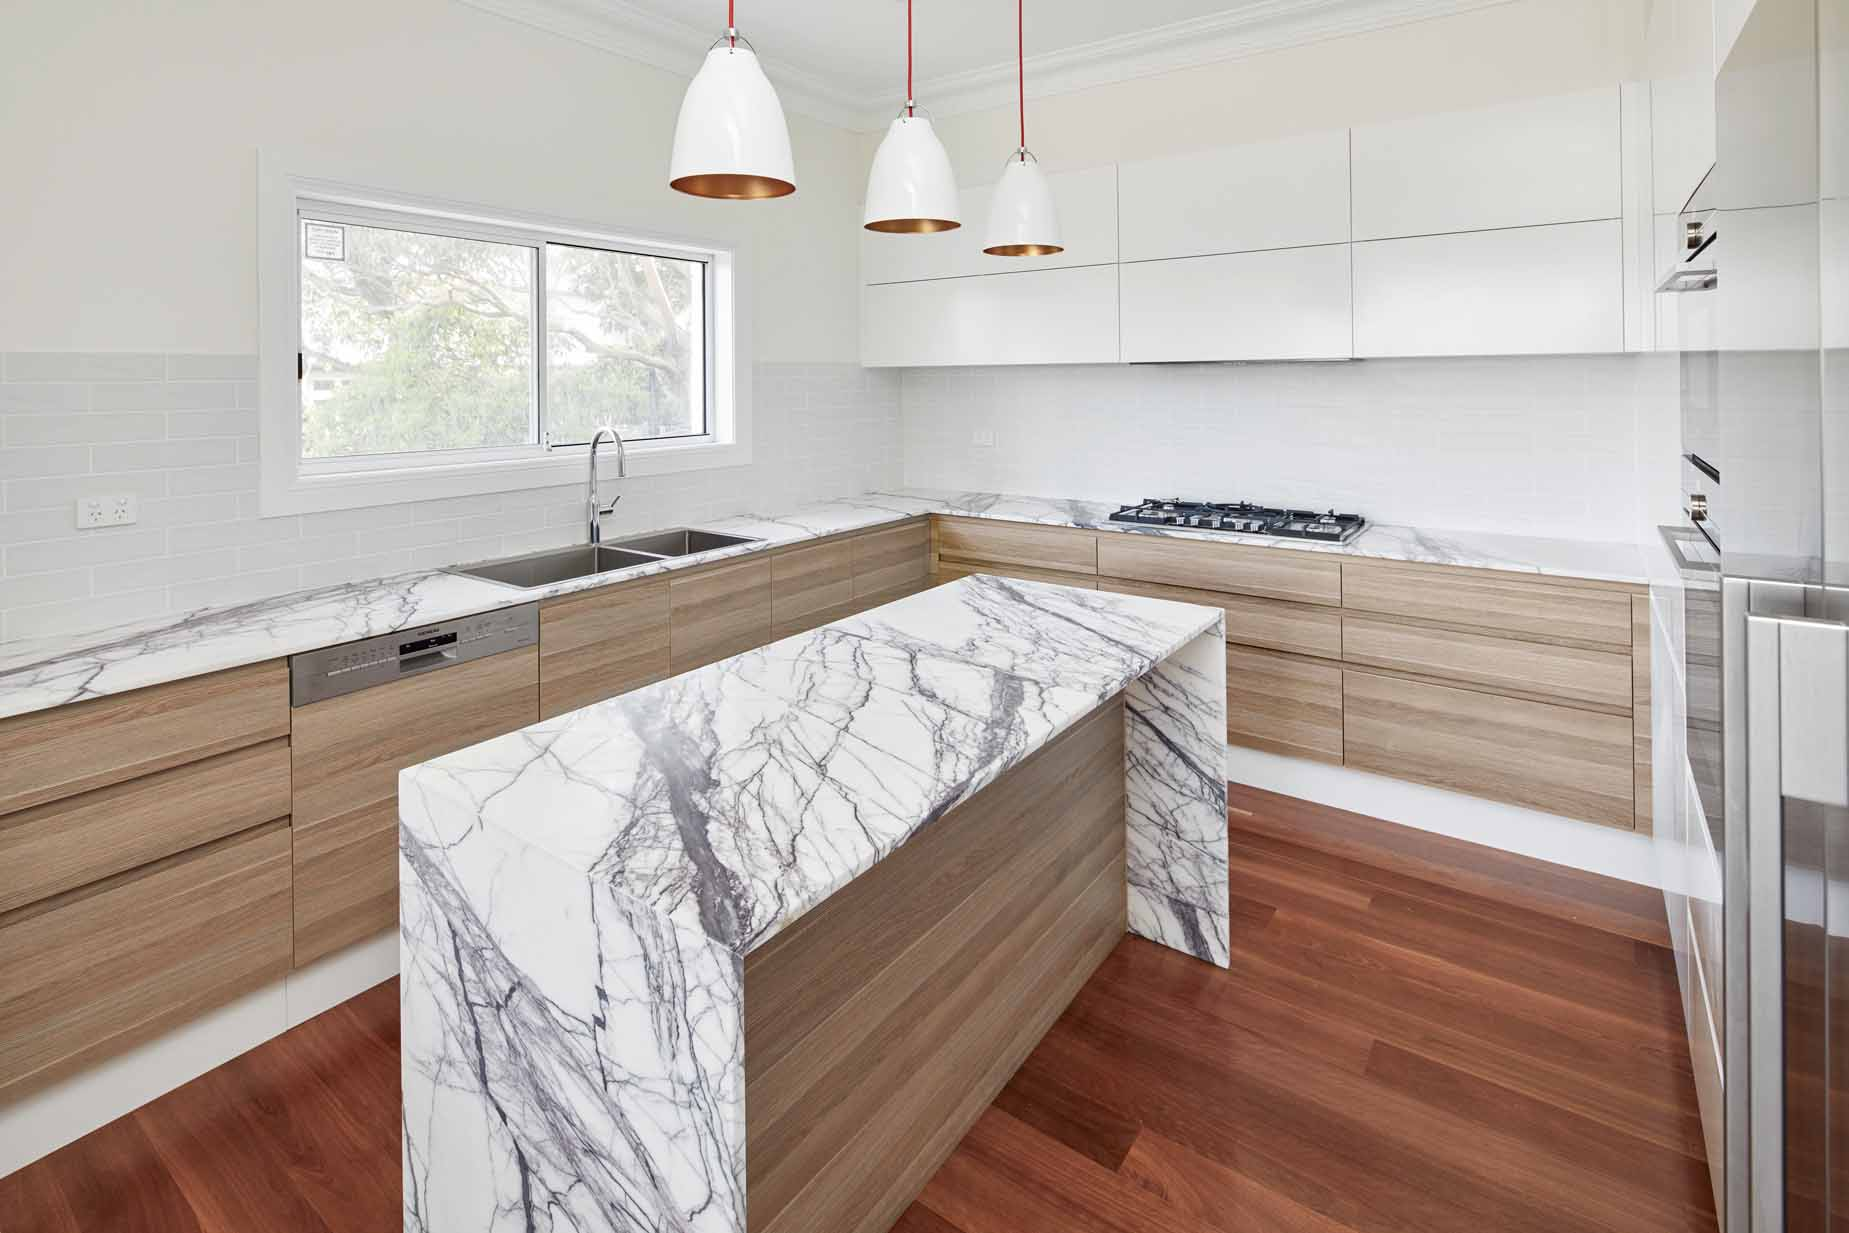 Contemporary meets functional